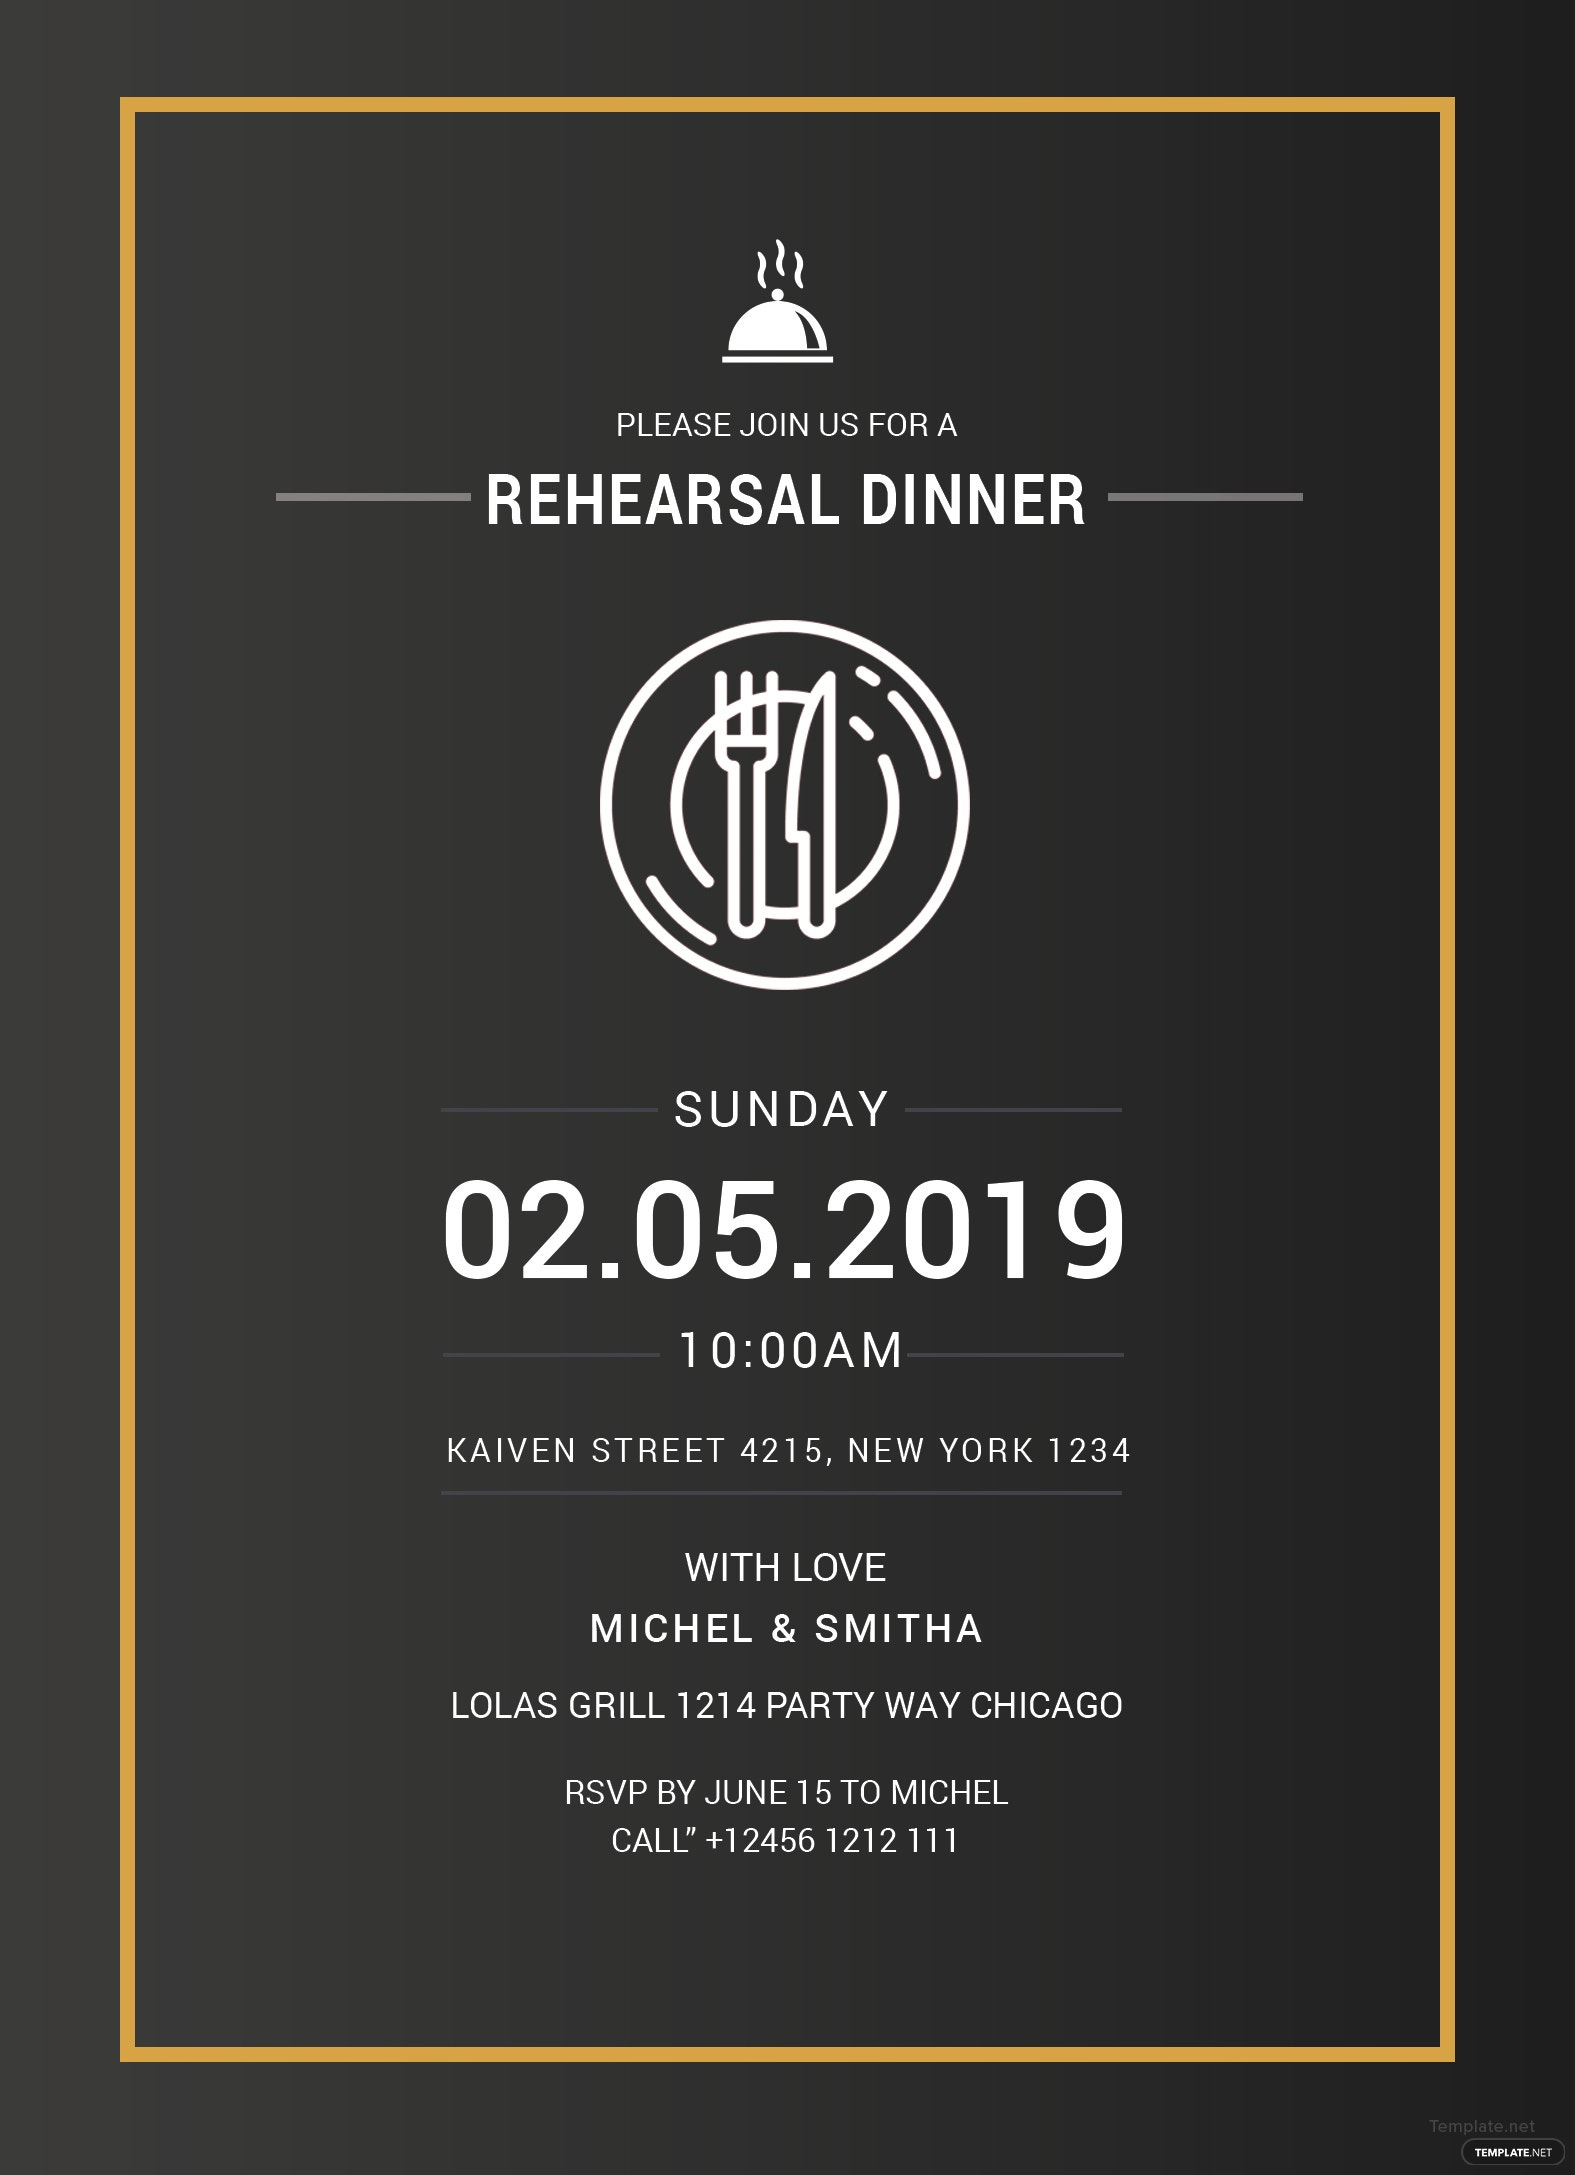 free rehearsal dinner party invitation template in adobe